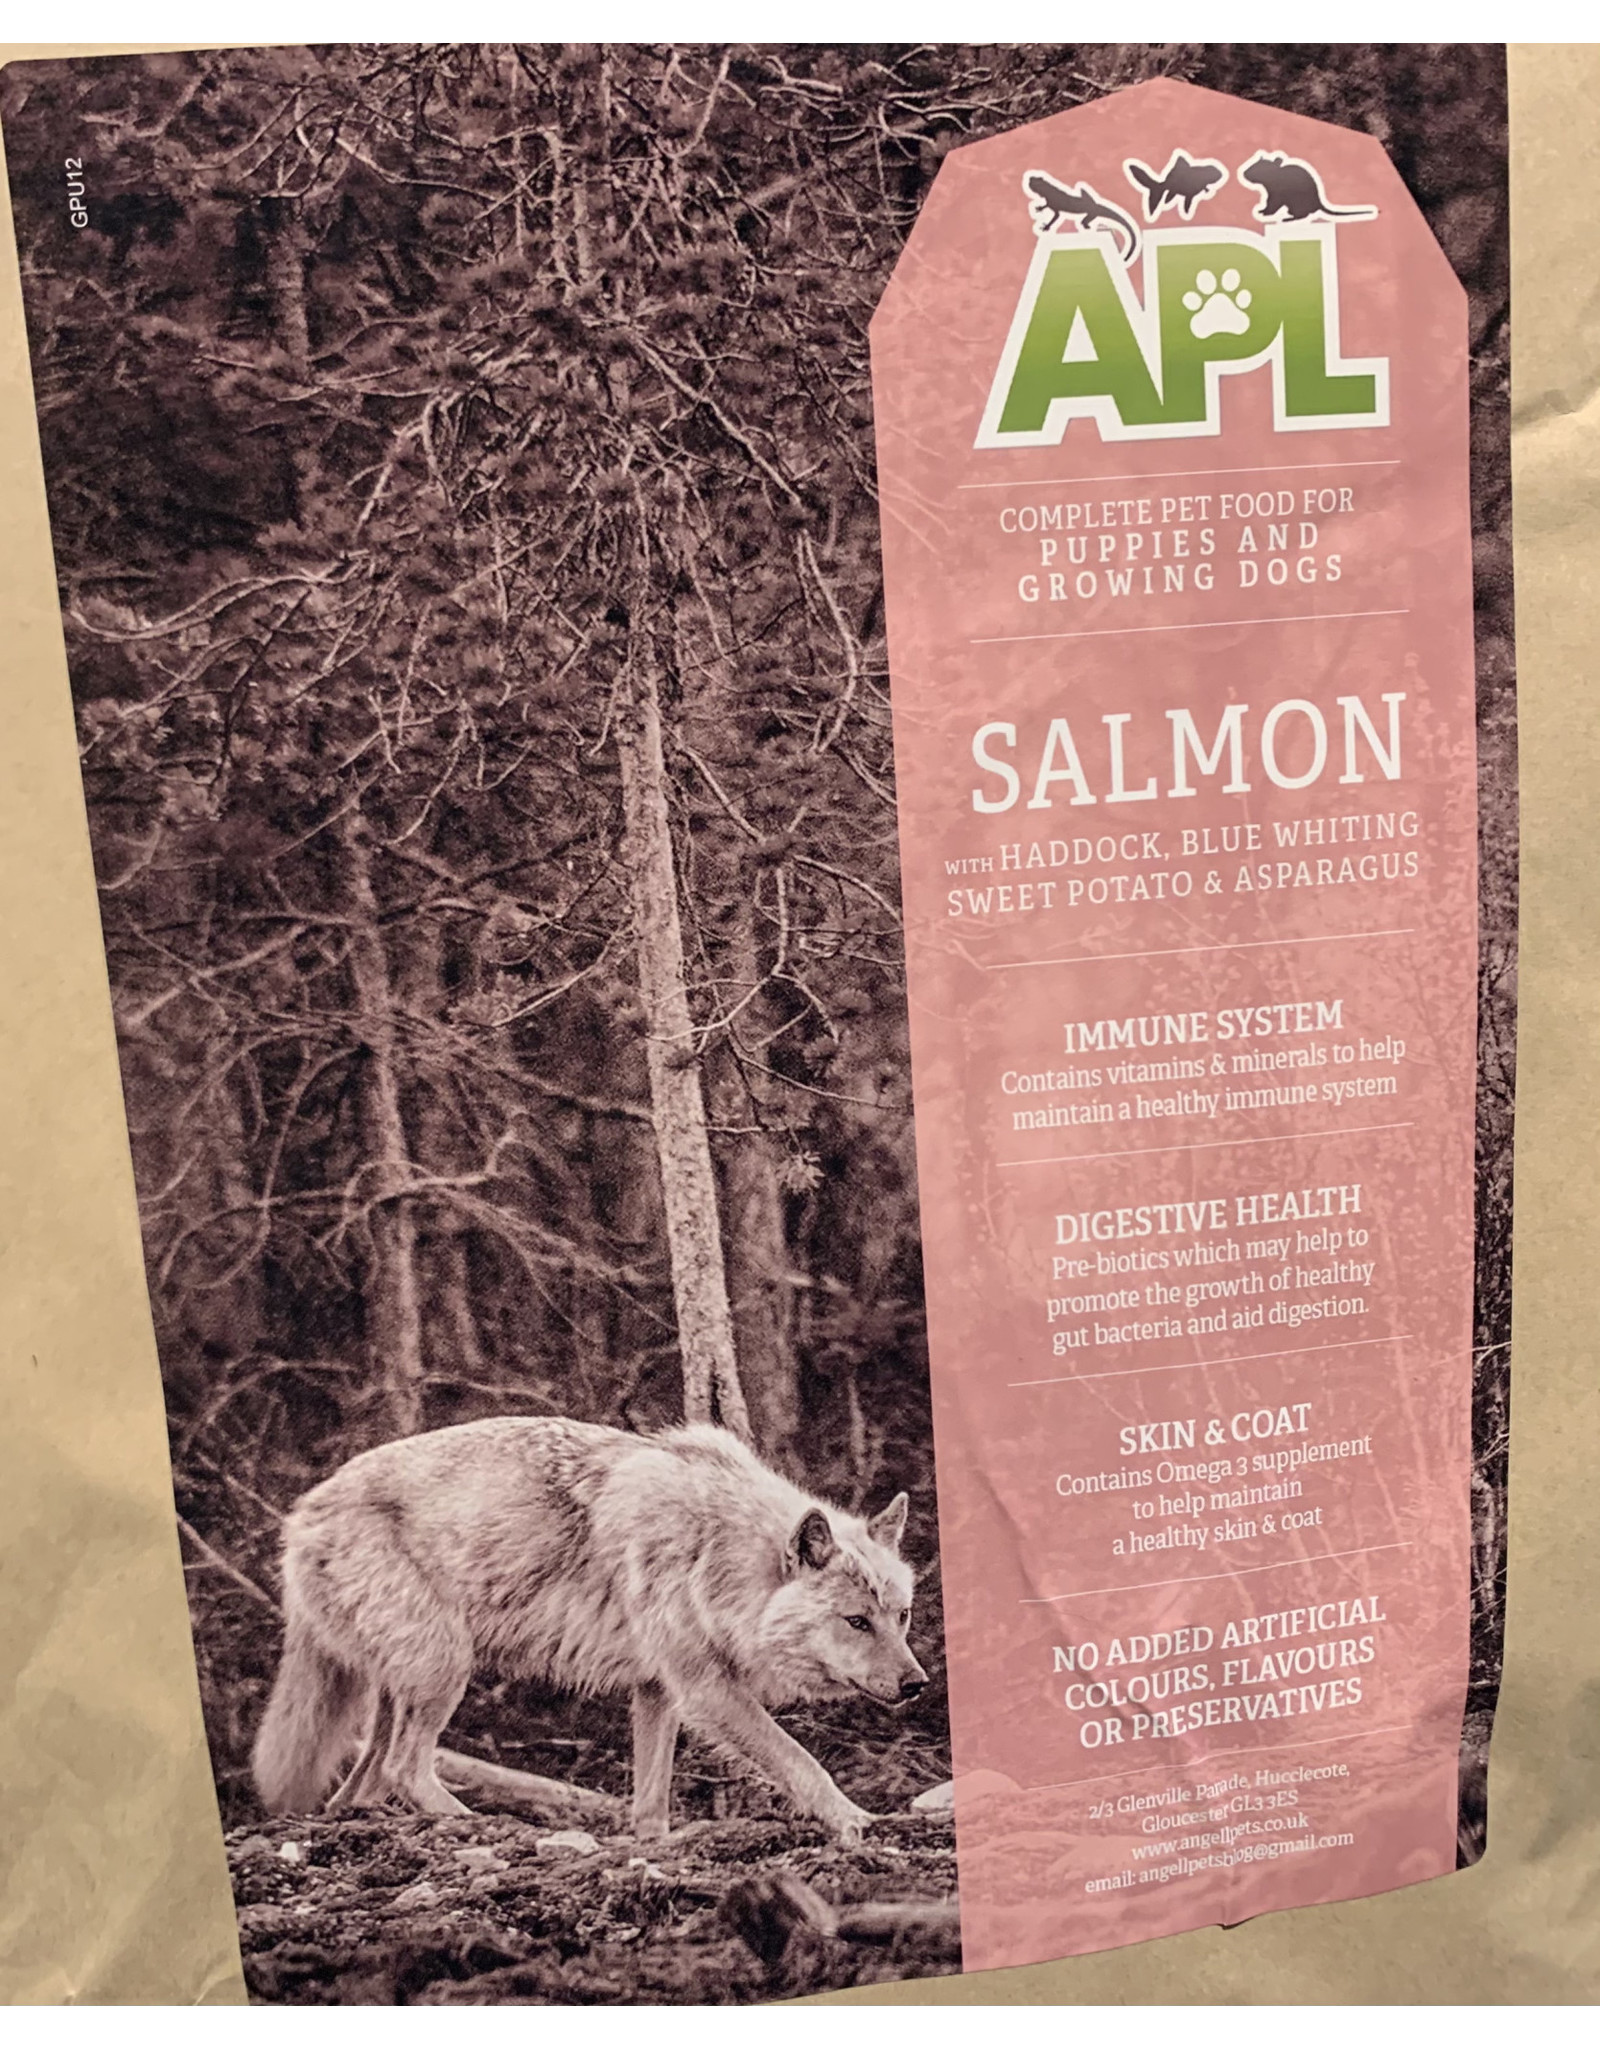 APL APL Grain Free Puppy Salmon, Haddock & Blue Whiting